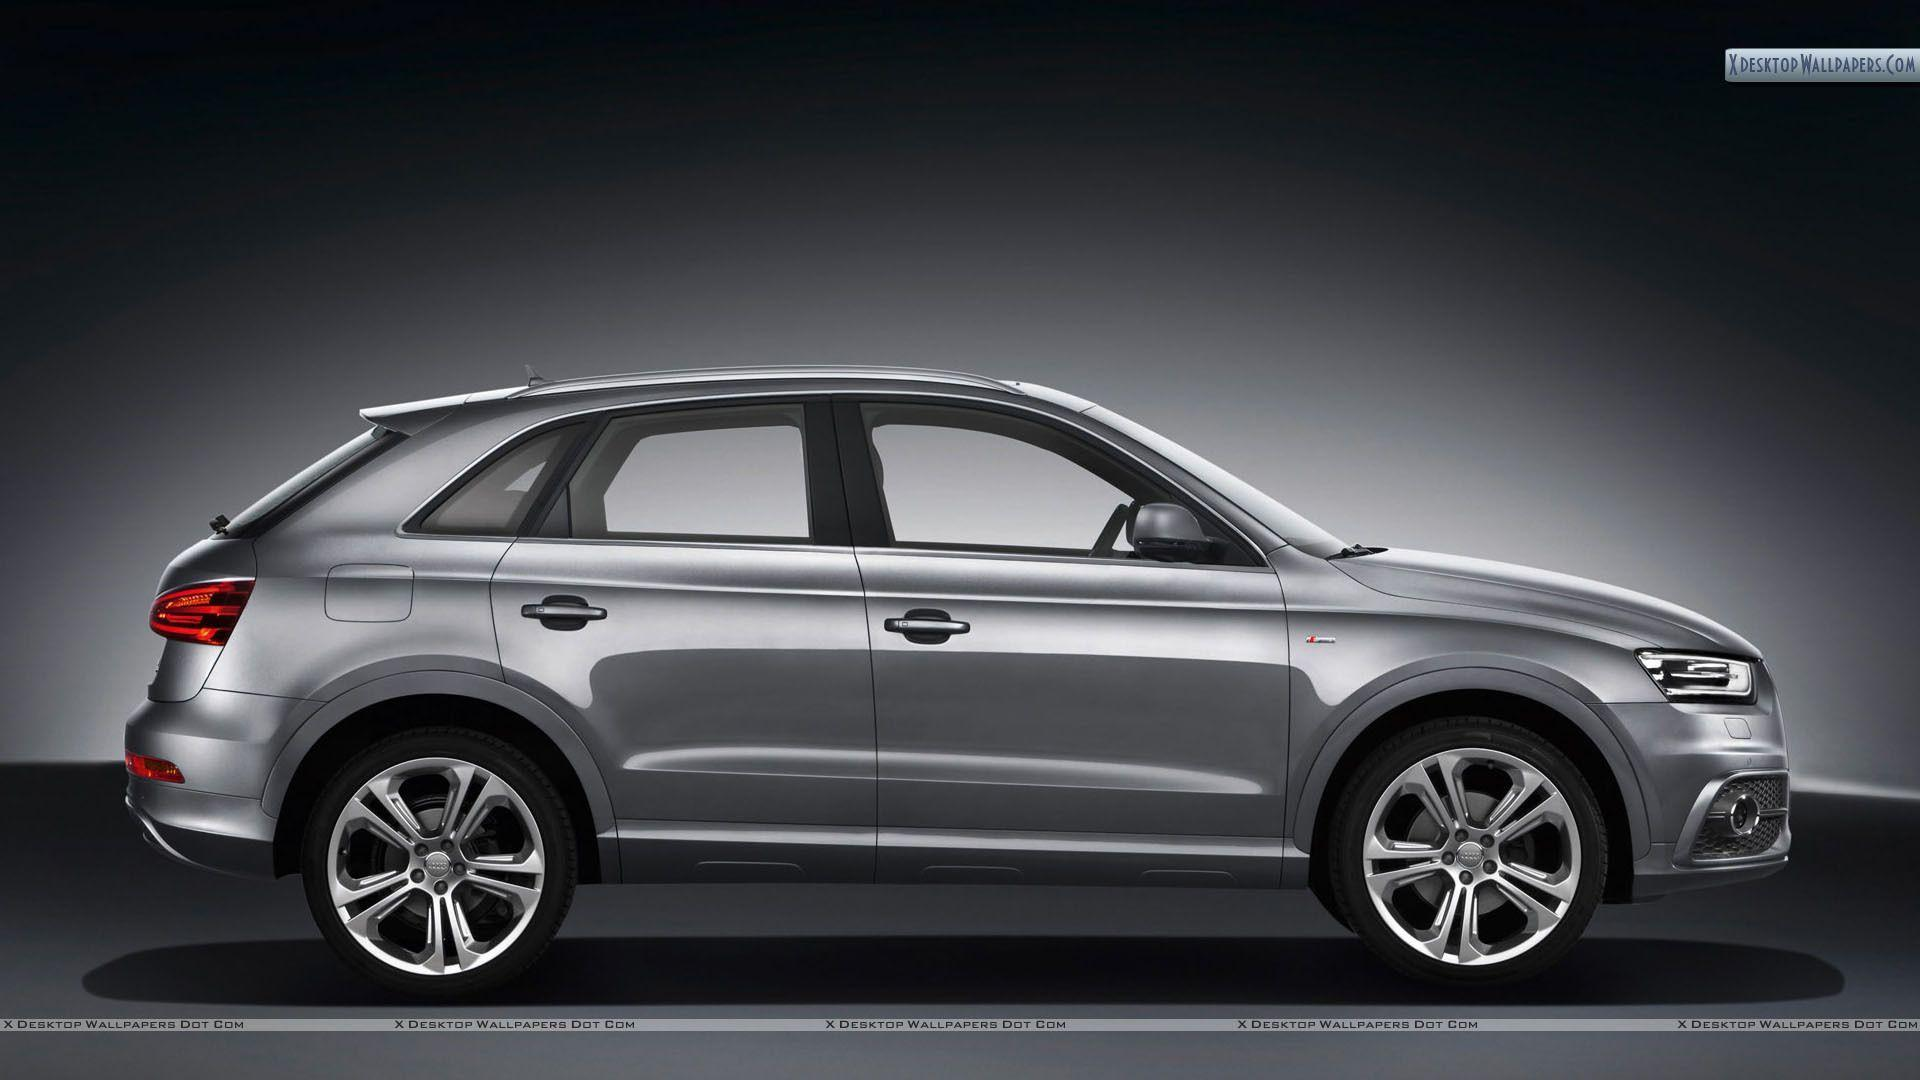 New car Audi q3 wallpapers and image